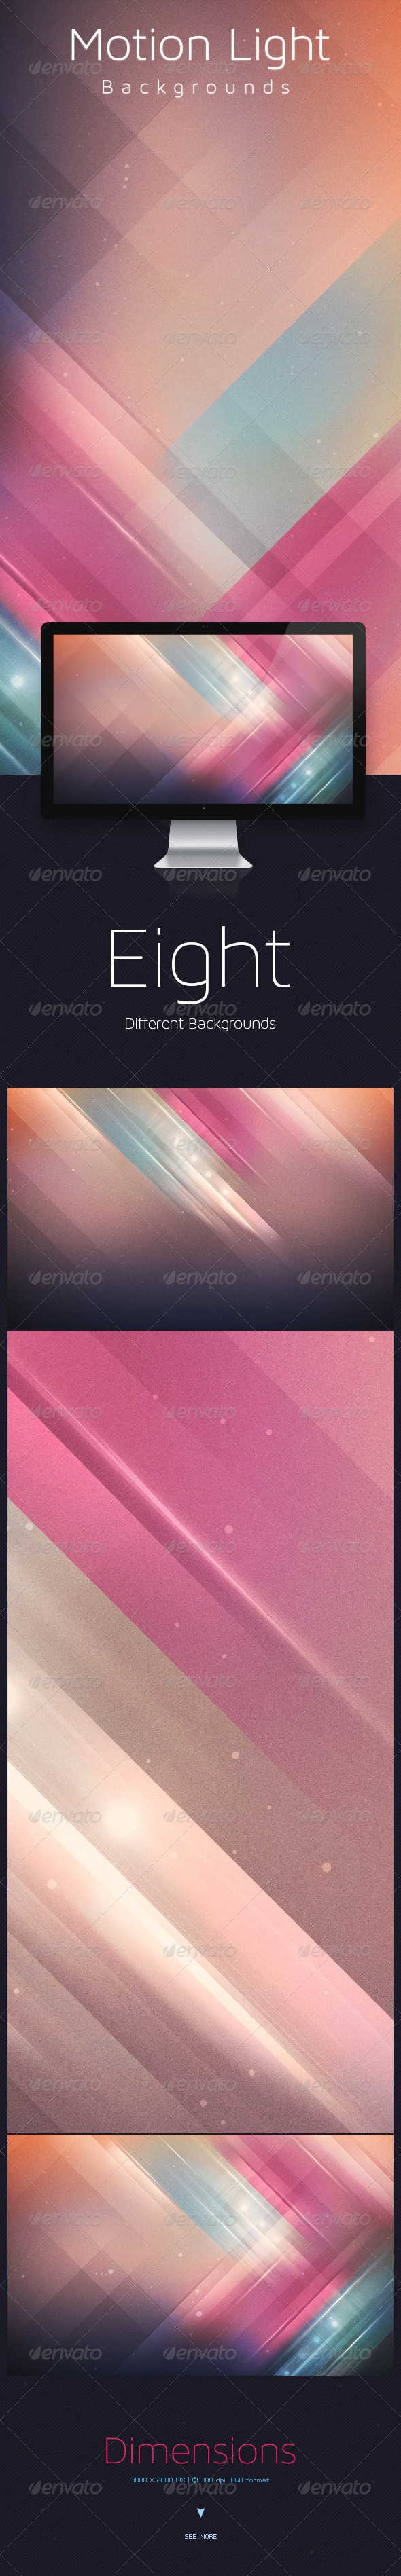 GraphicRiver Motion Light Backgrounds 5778659